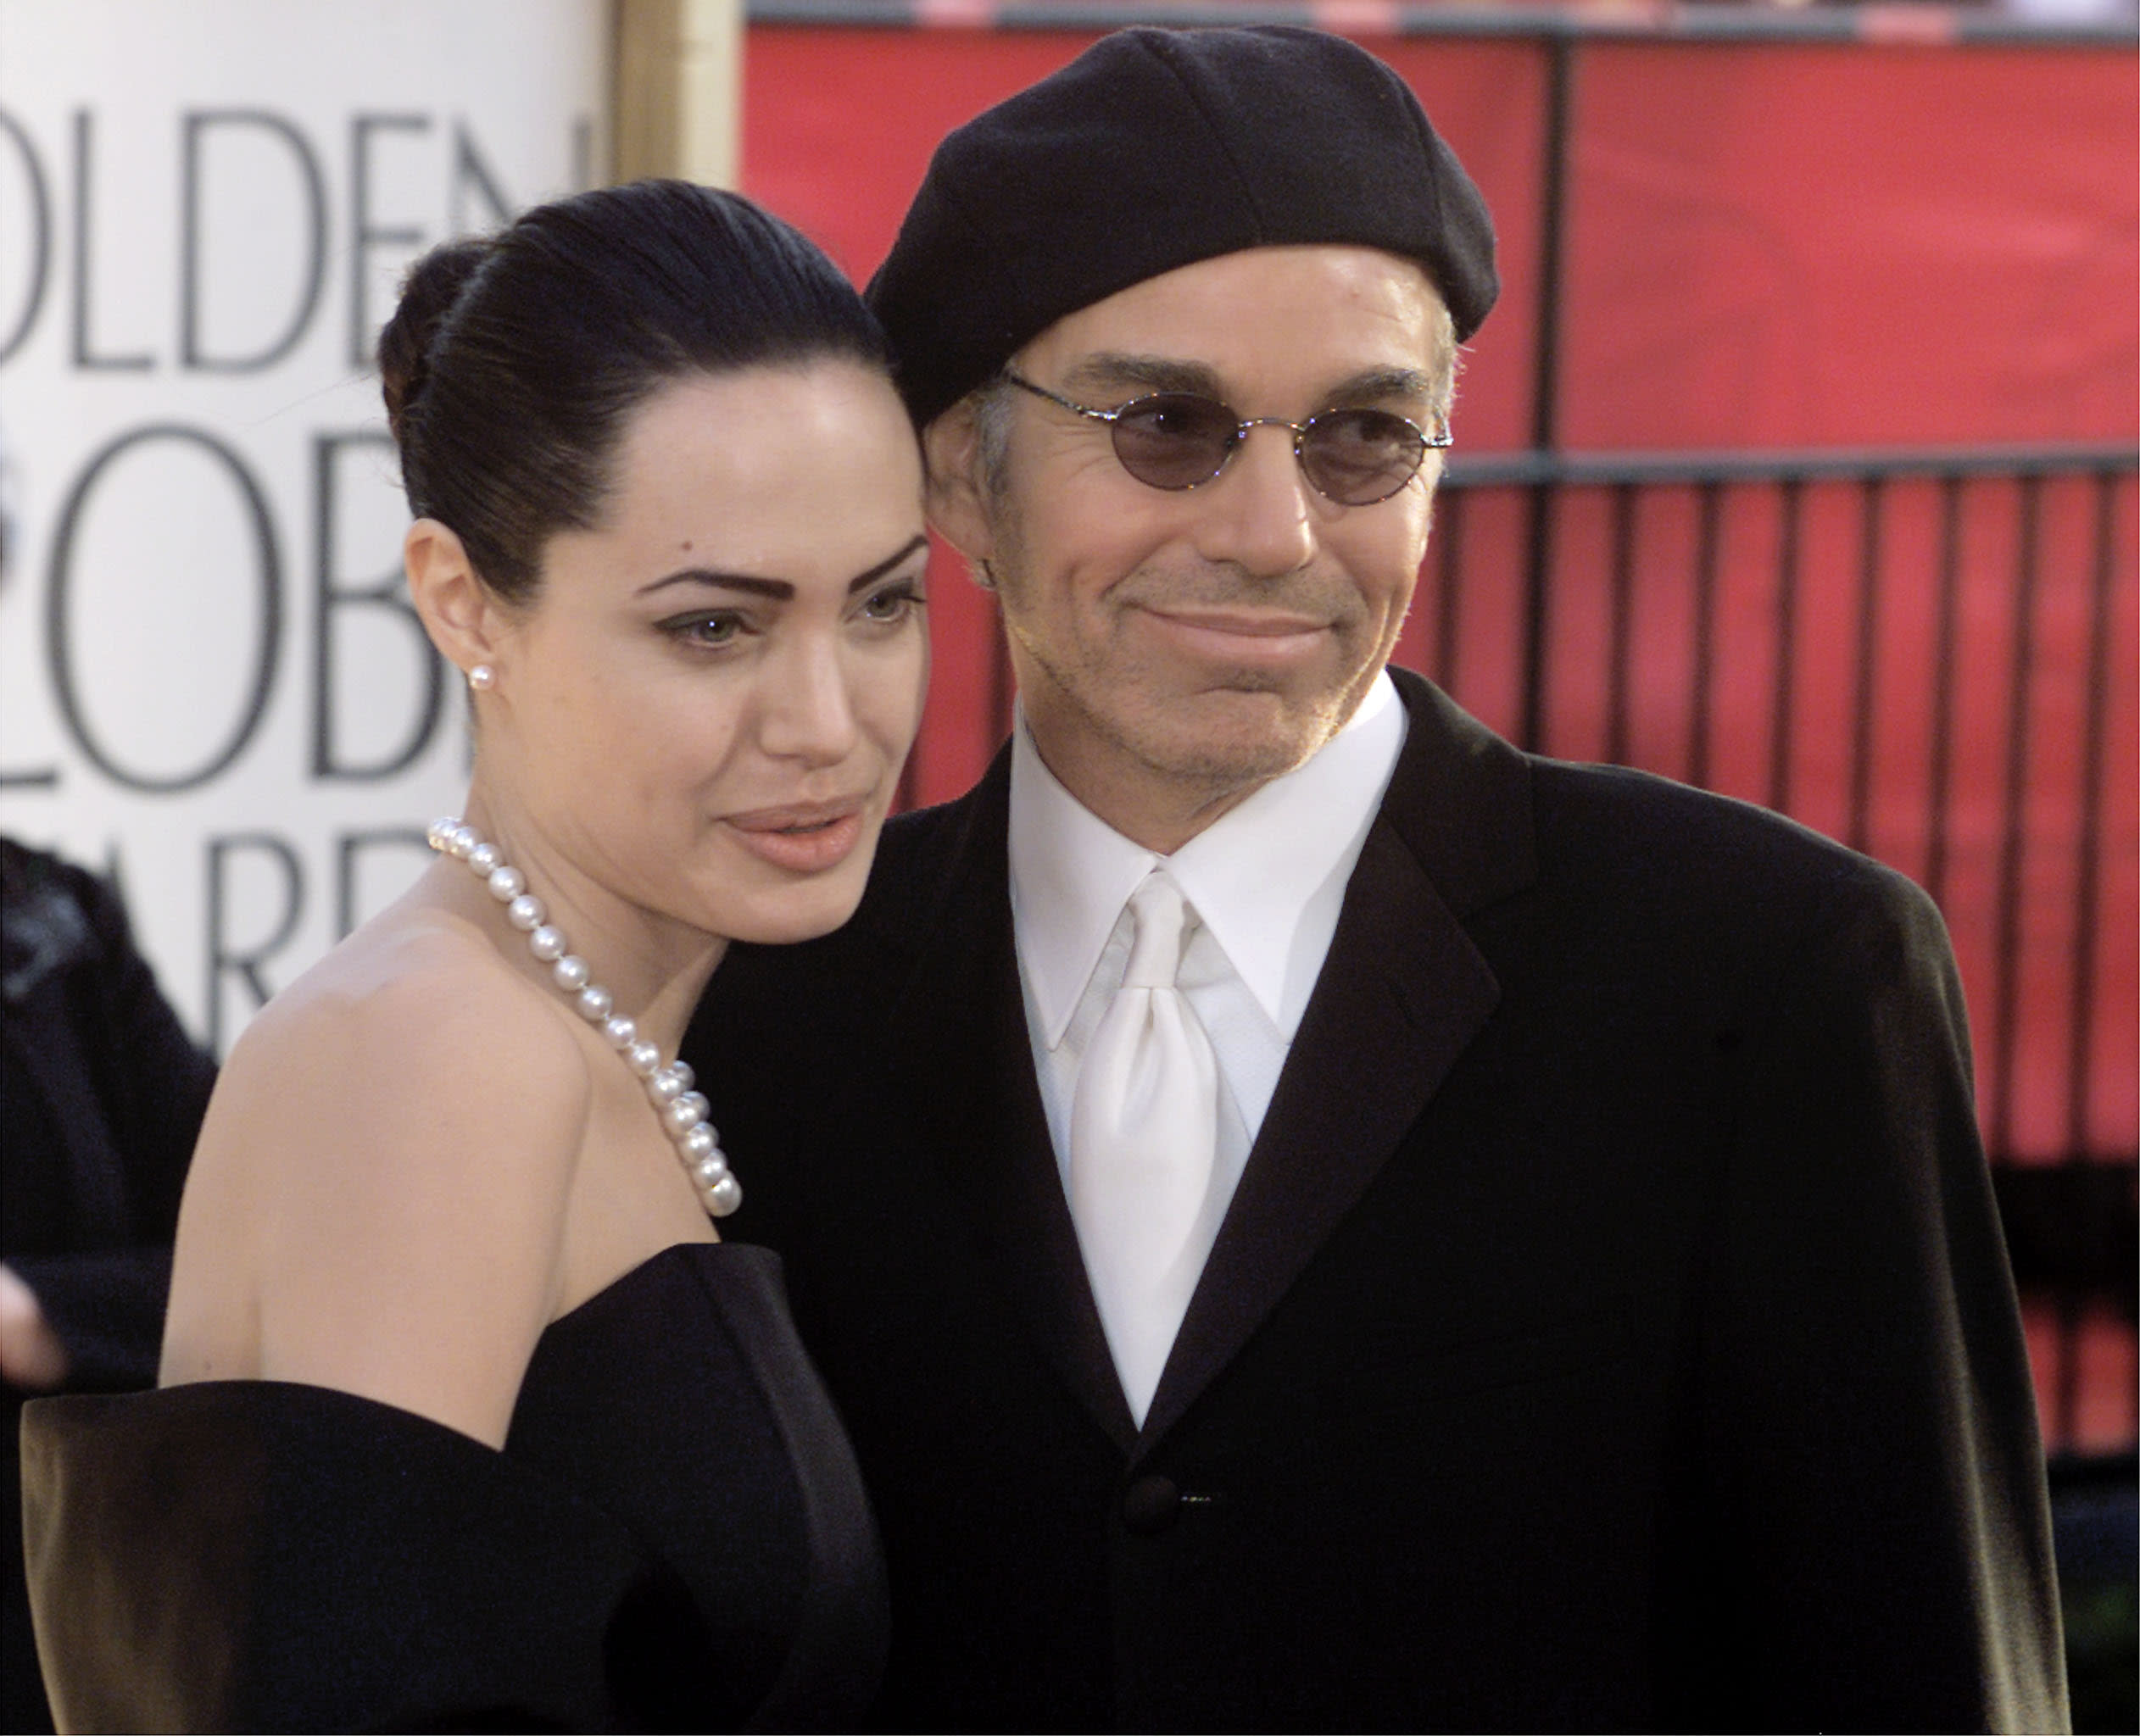 Billy Bob Thornton says he and ex-wife Angelina Jolie are 'good friends'